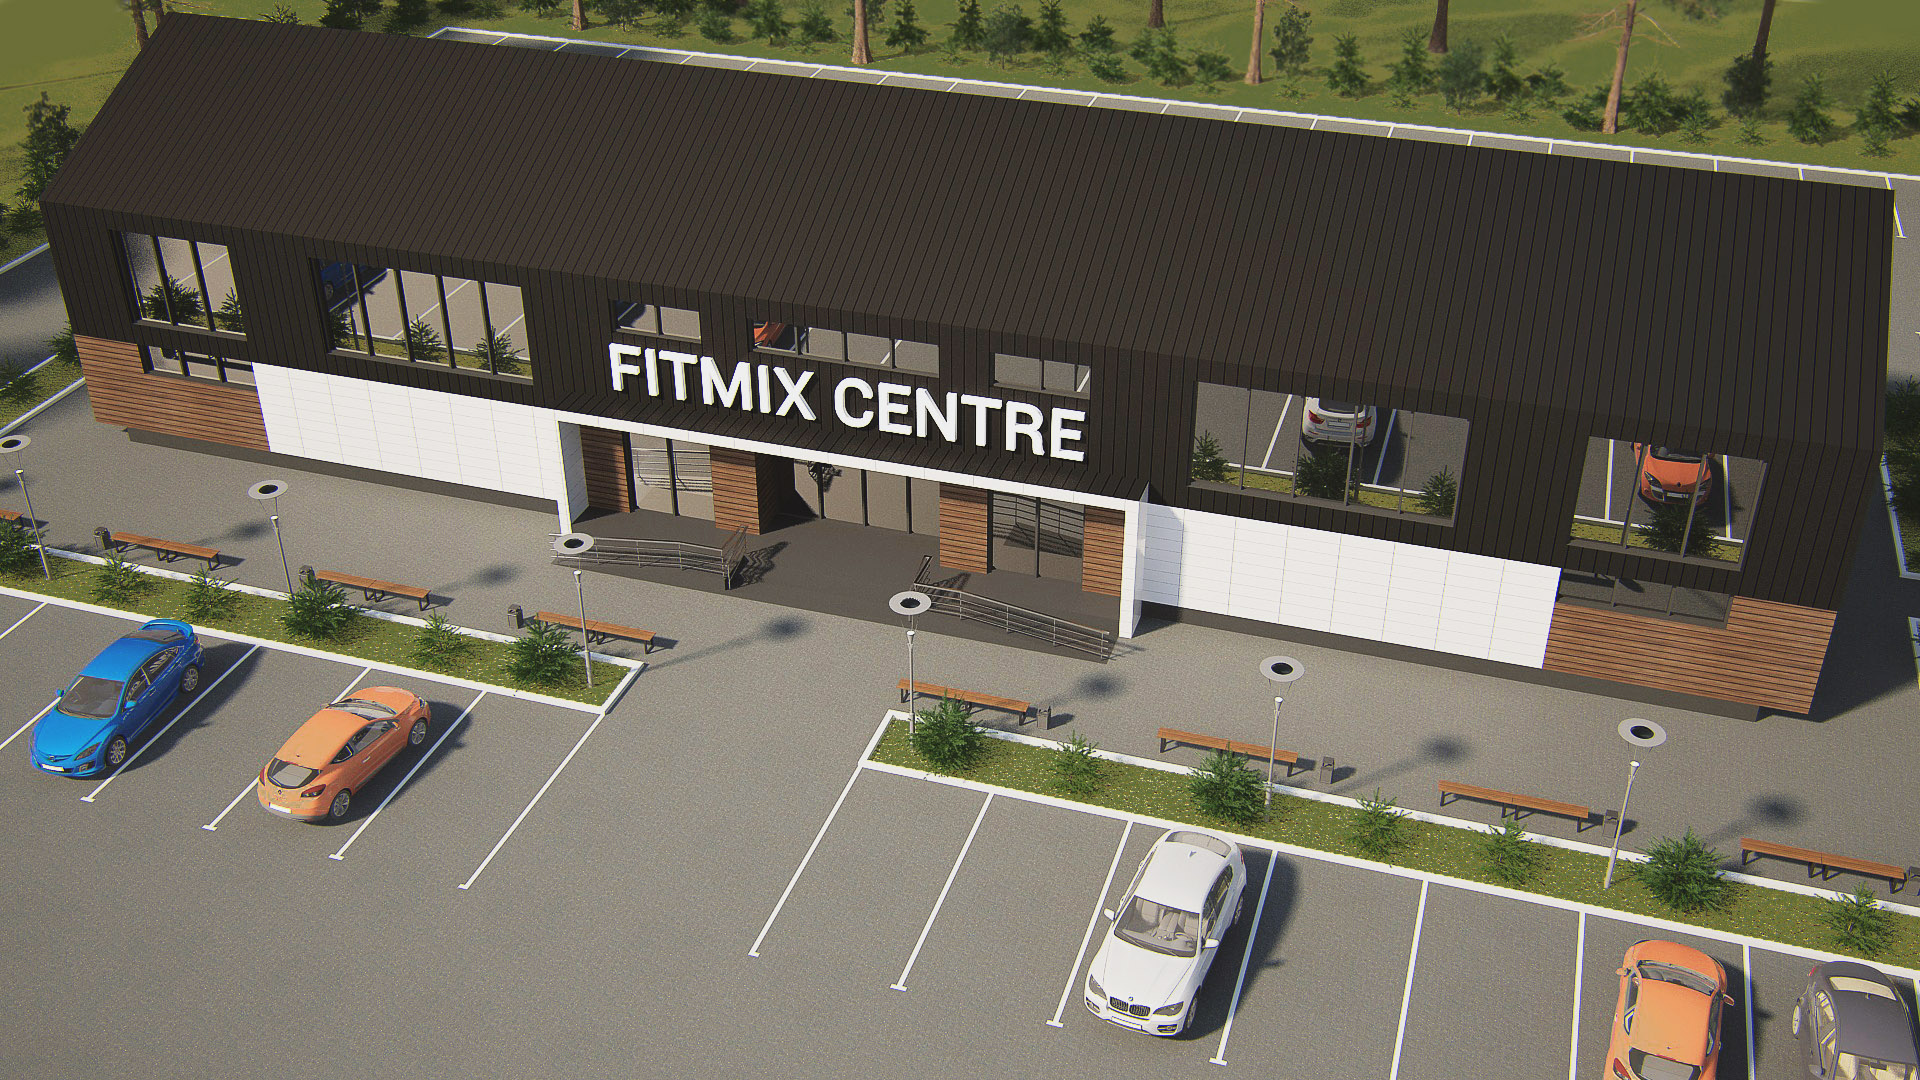 003-fitmixcentre